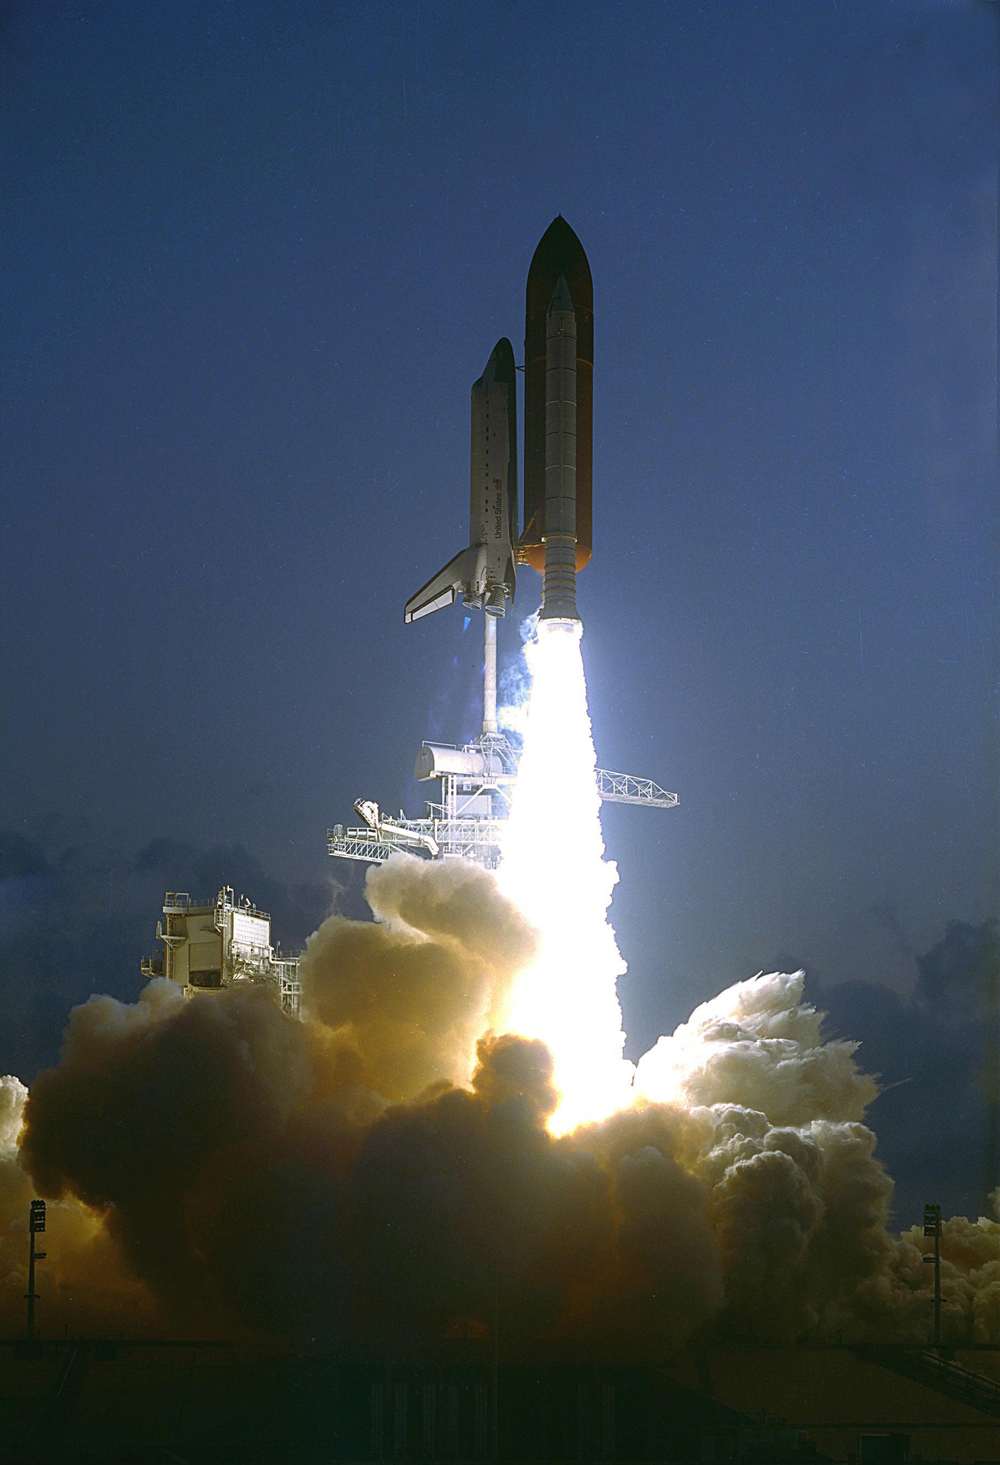 NASA's Space Shuttle Endeavour: 6 Surprising Facts